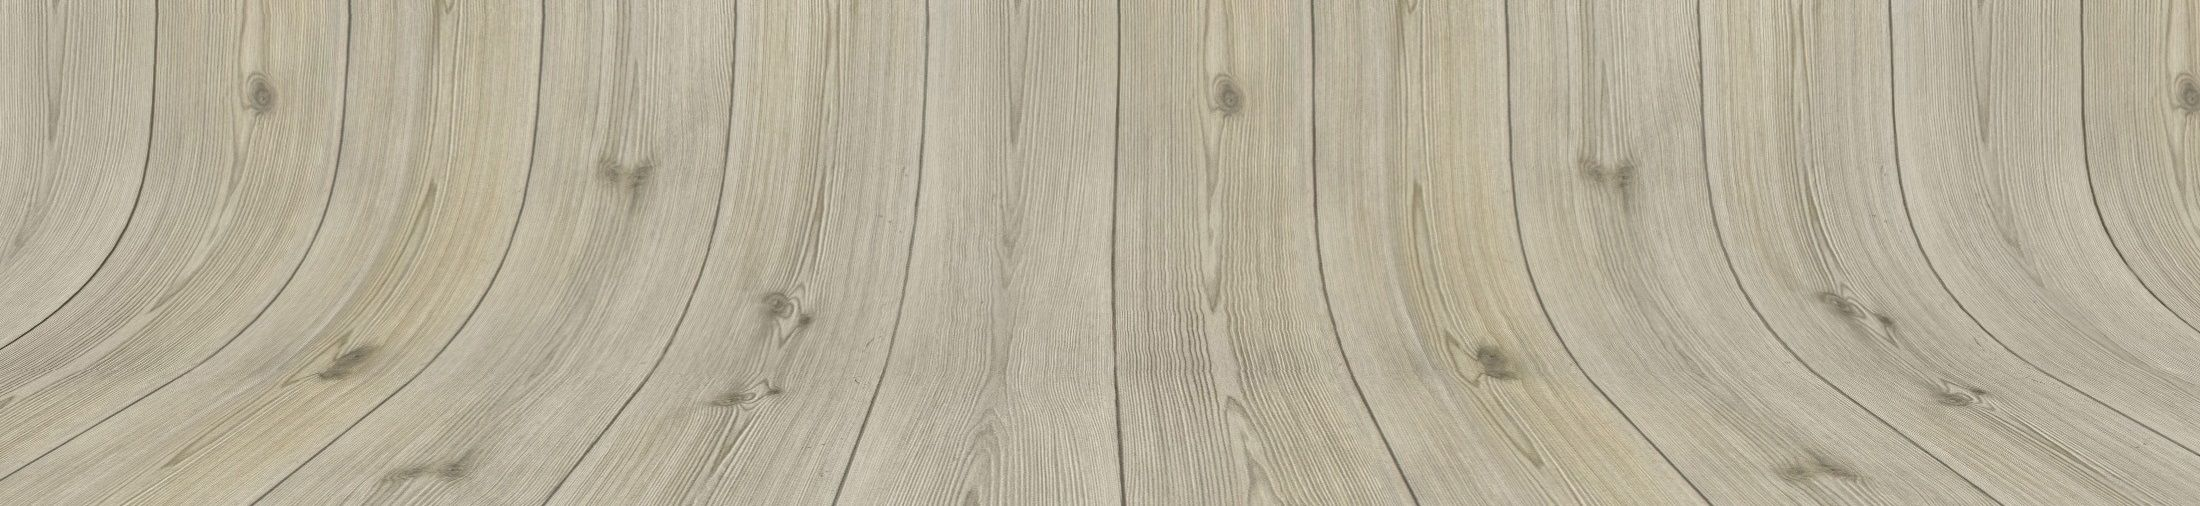 hout-1